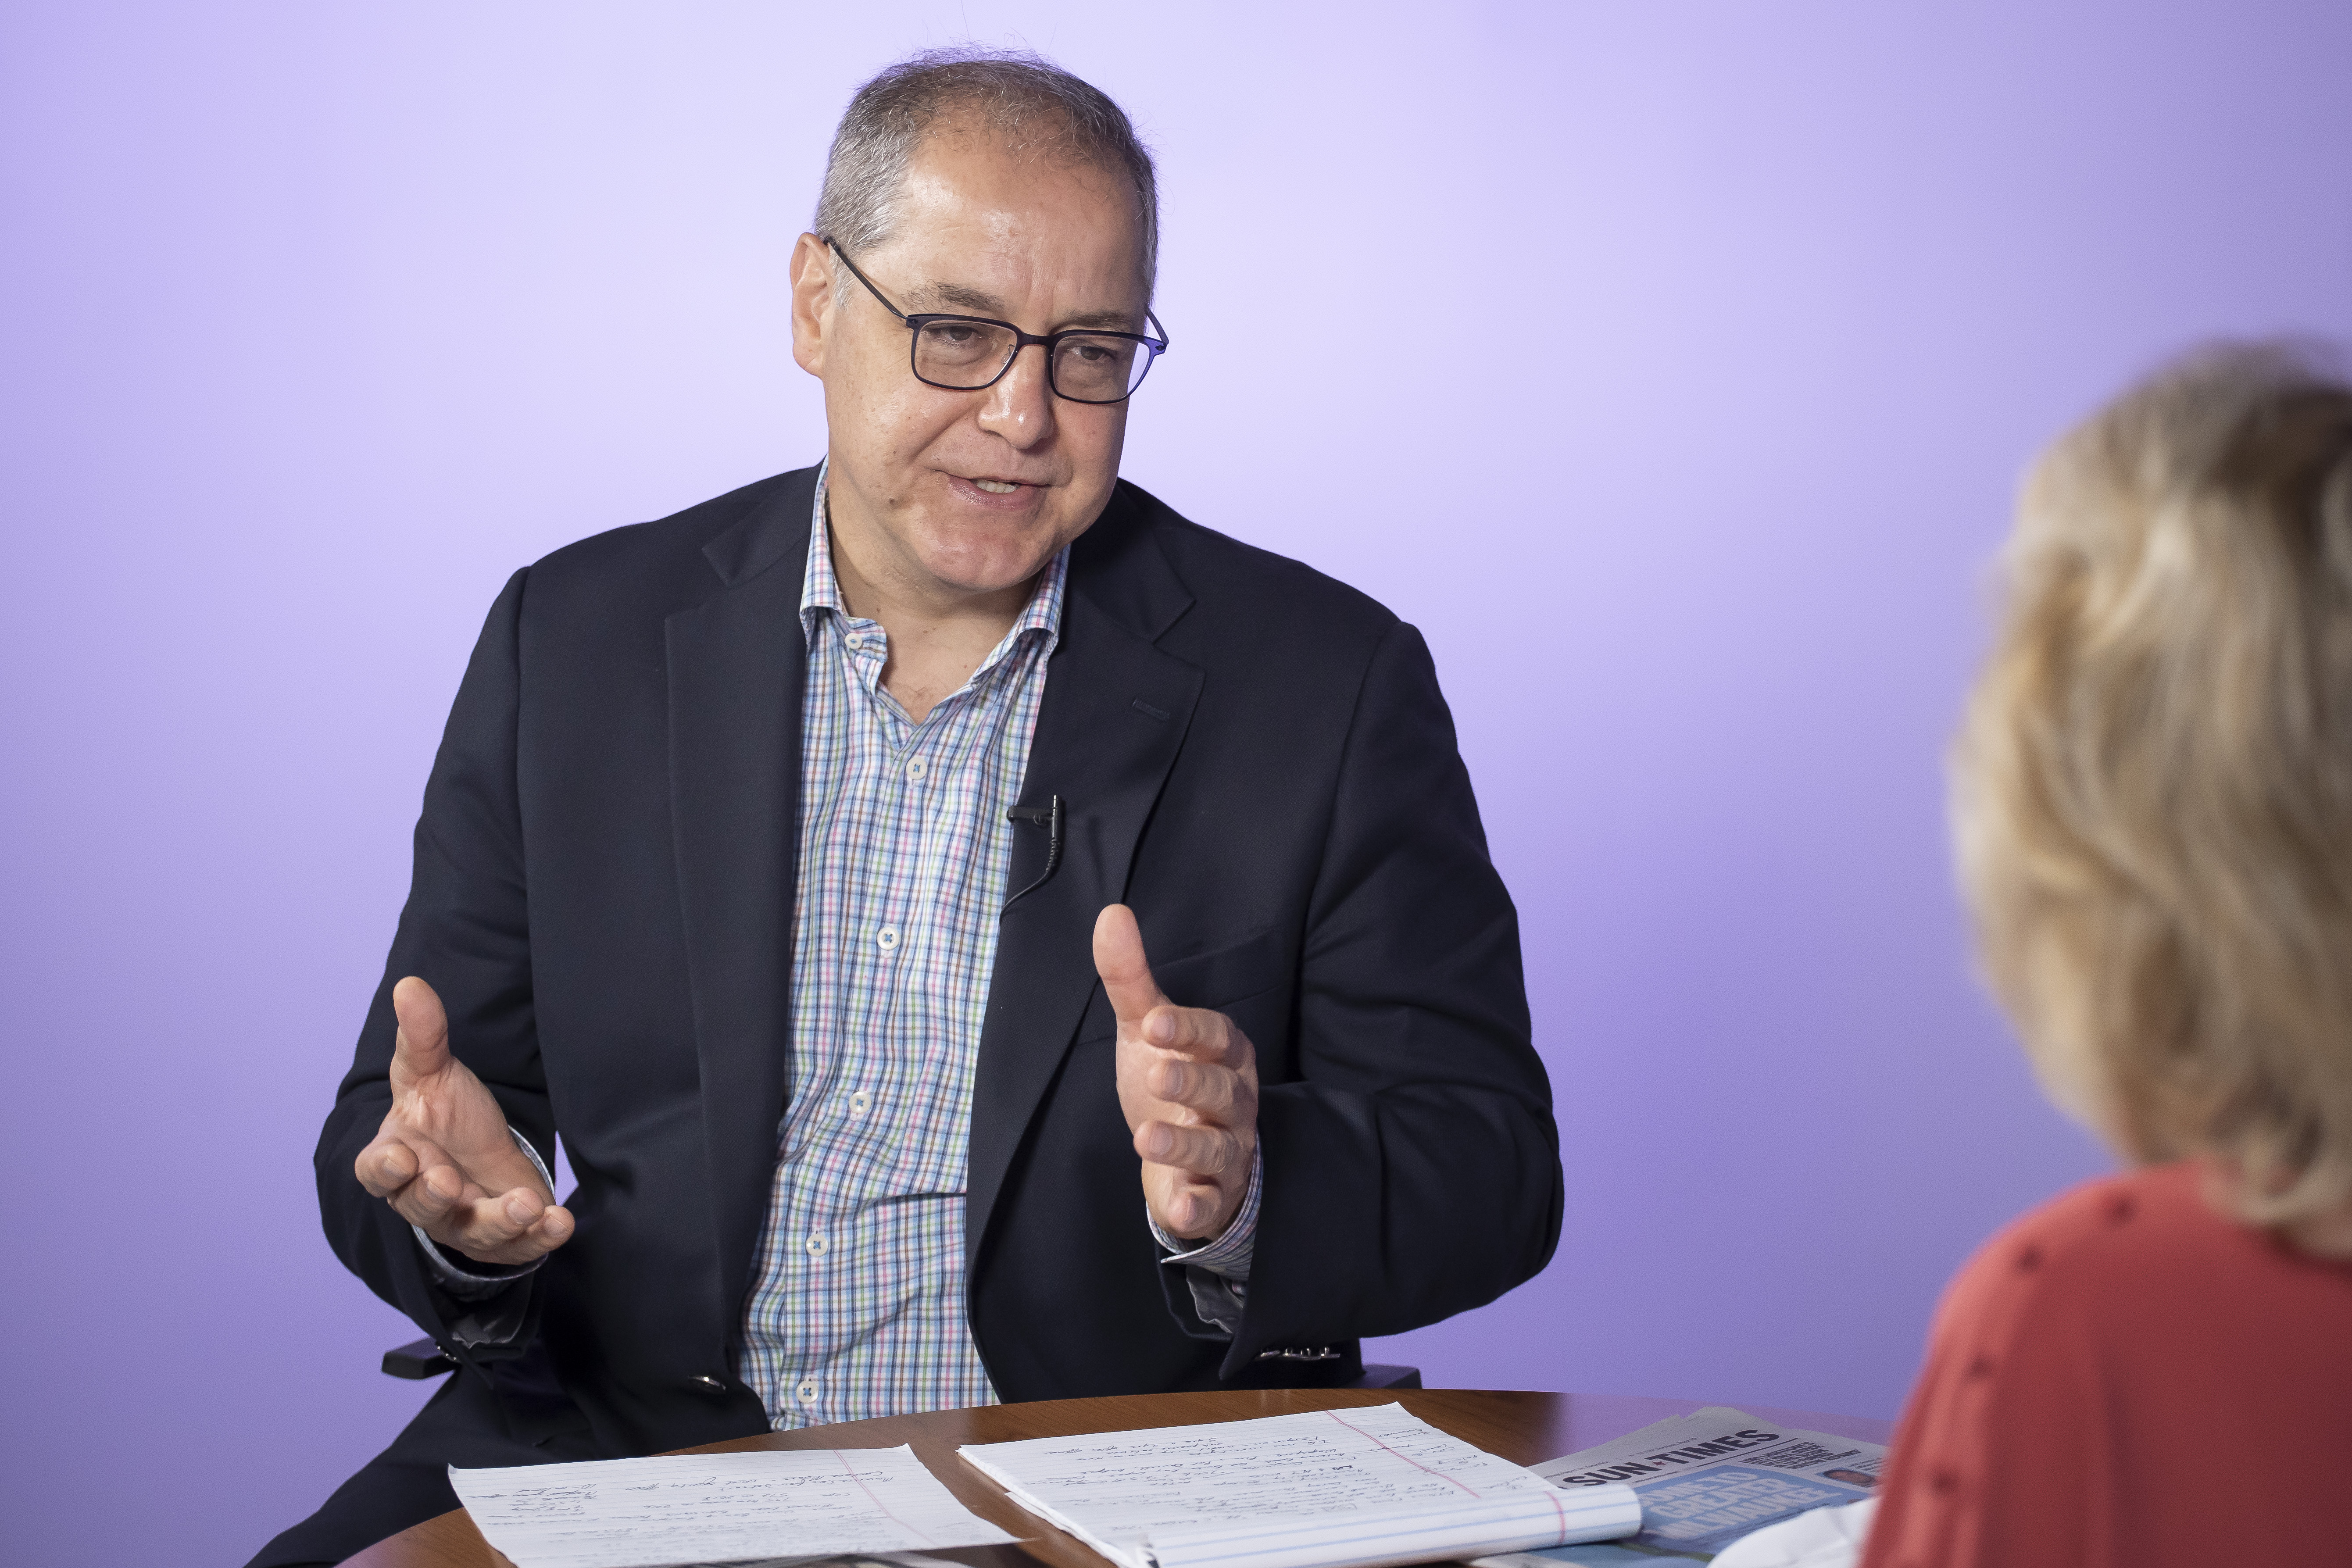 Better Government Association President and CEO David Greising was interviewed by Fran Spielman Friday, August 23, 2019.